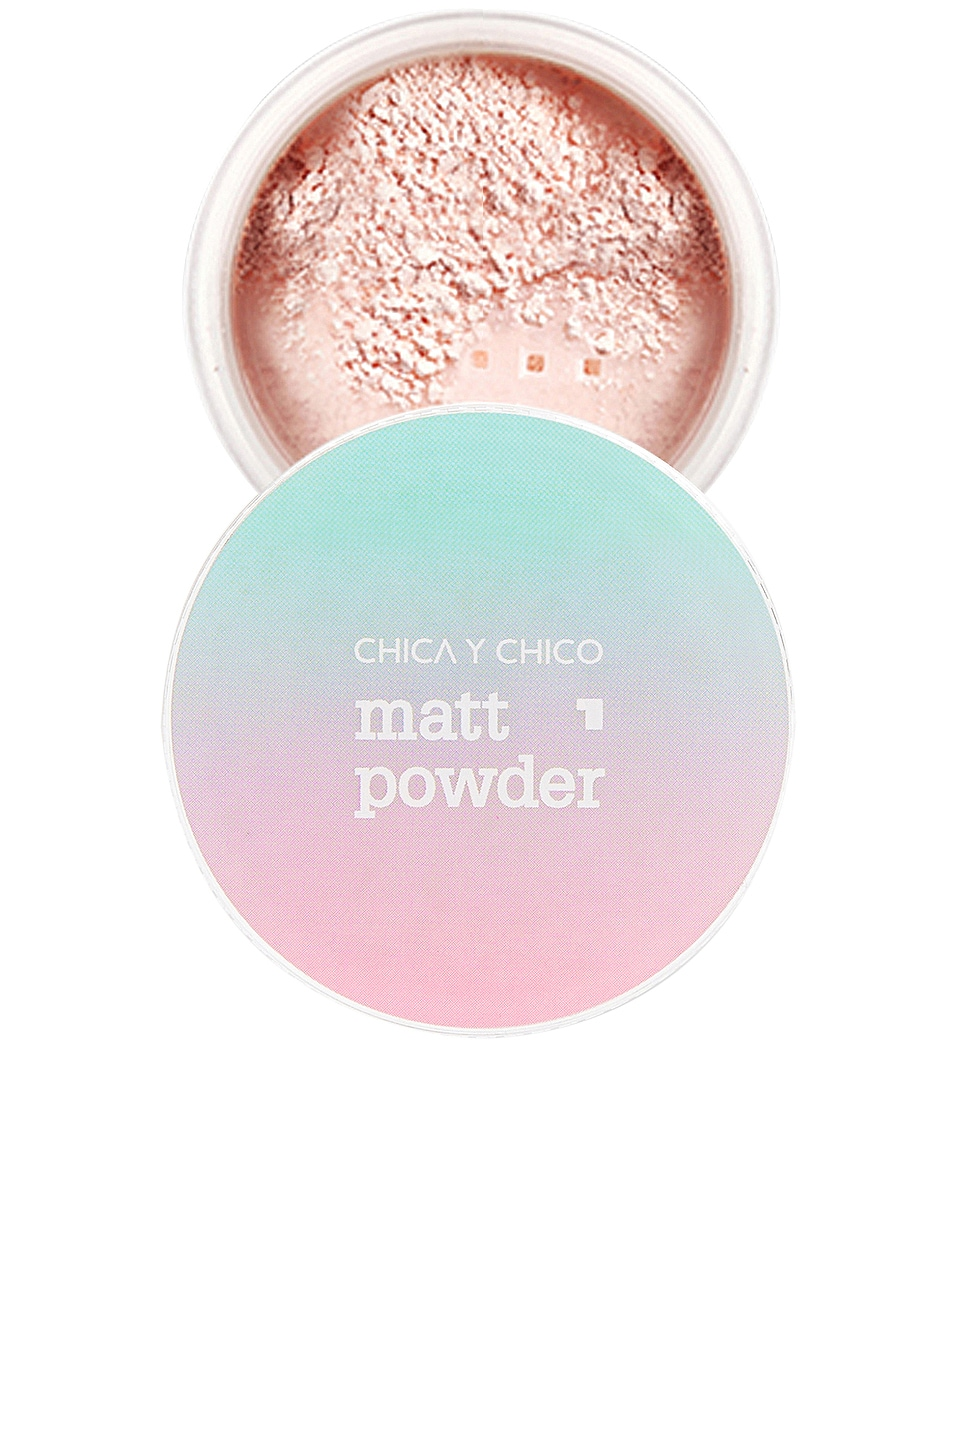 Chica Y Chico Matt Powder in Pink